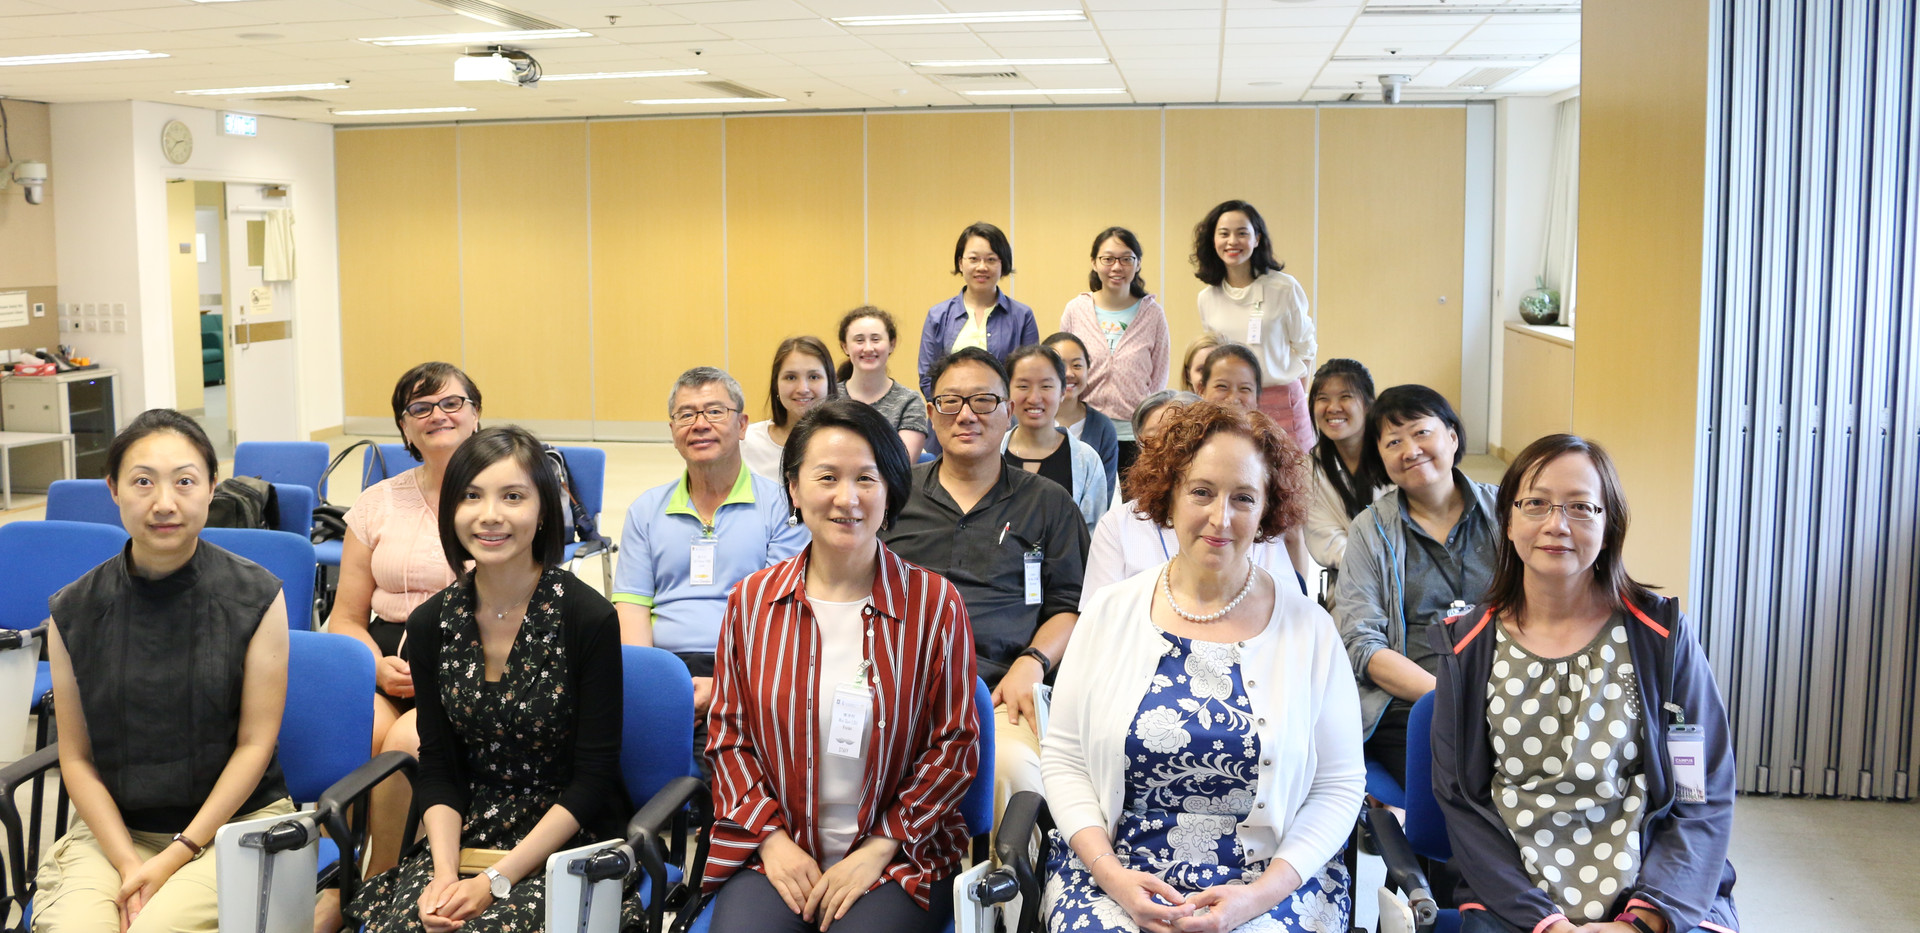 """[Knowledge exchange] """"Senior Champions"""" exchanging ideas with Dr Sarah Hope Kagan and her students from School of Nursing, University of Pennsylvania(May 15th, 2019)"""